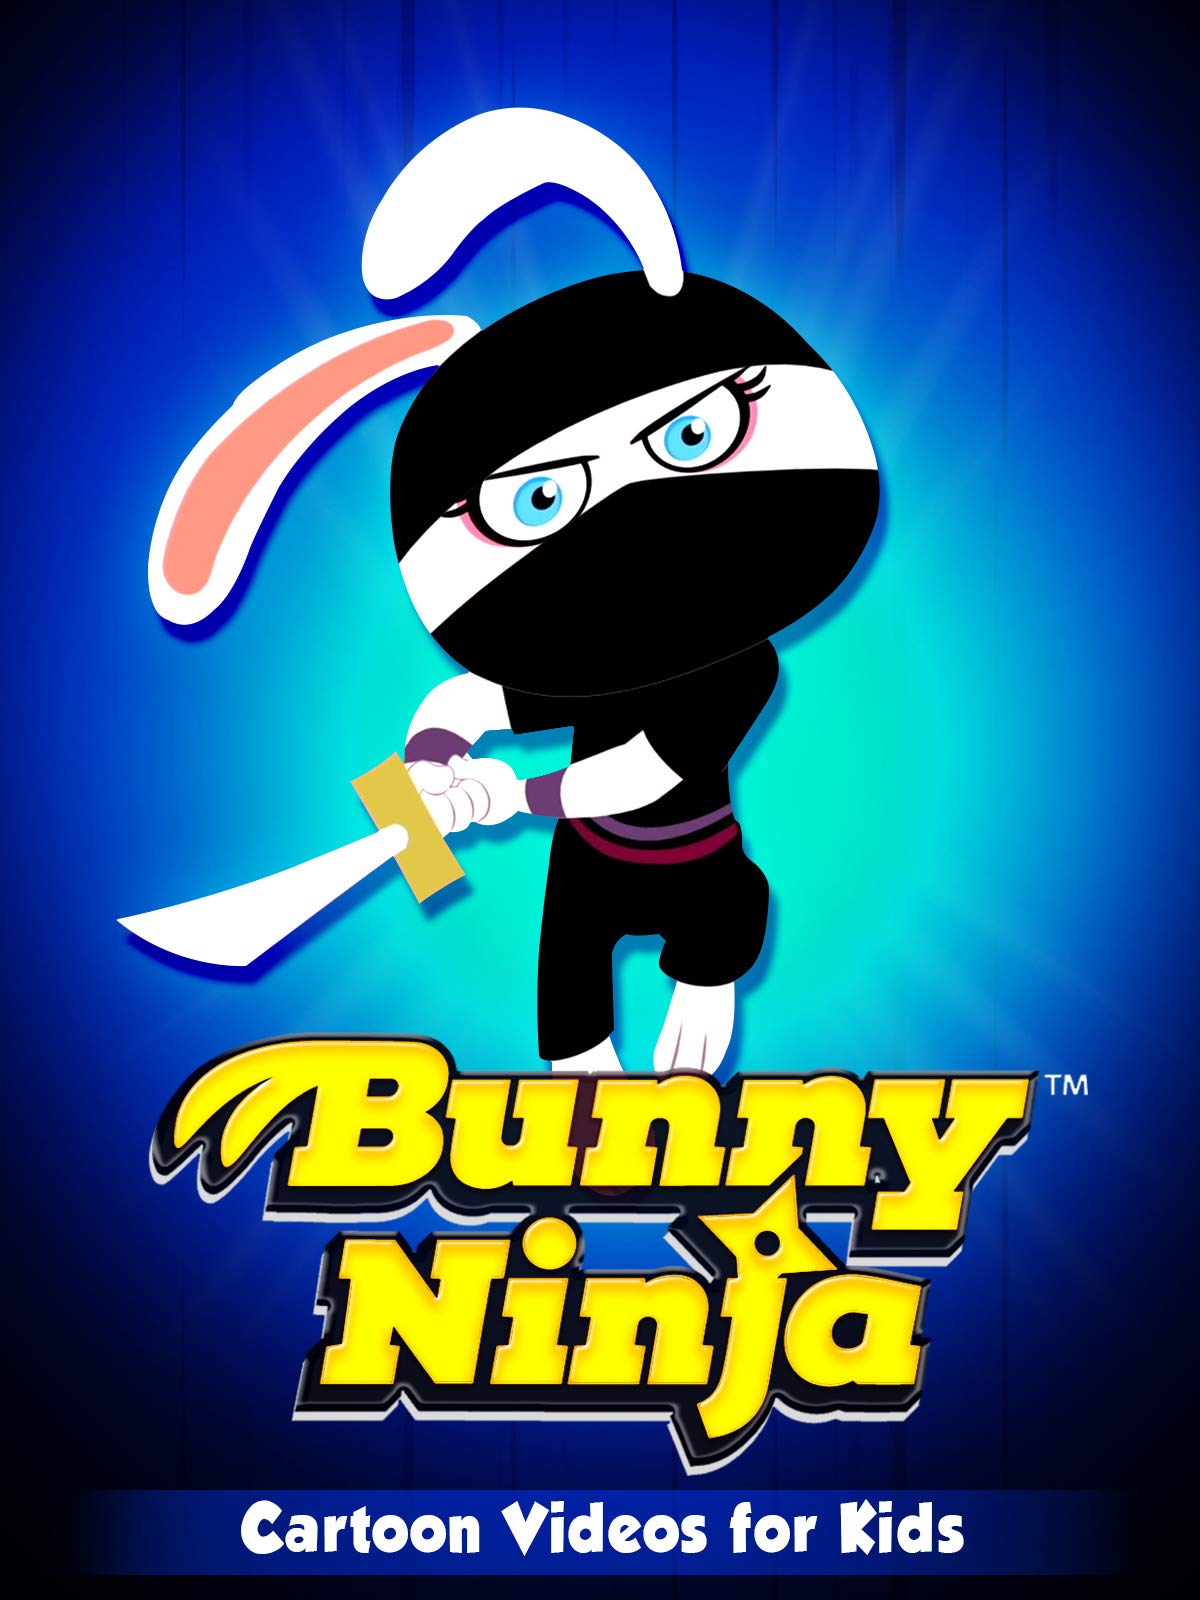 Amazon.com: Cartoons Videos For Kids - Bunny Ninja: Bunny ...